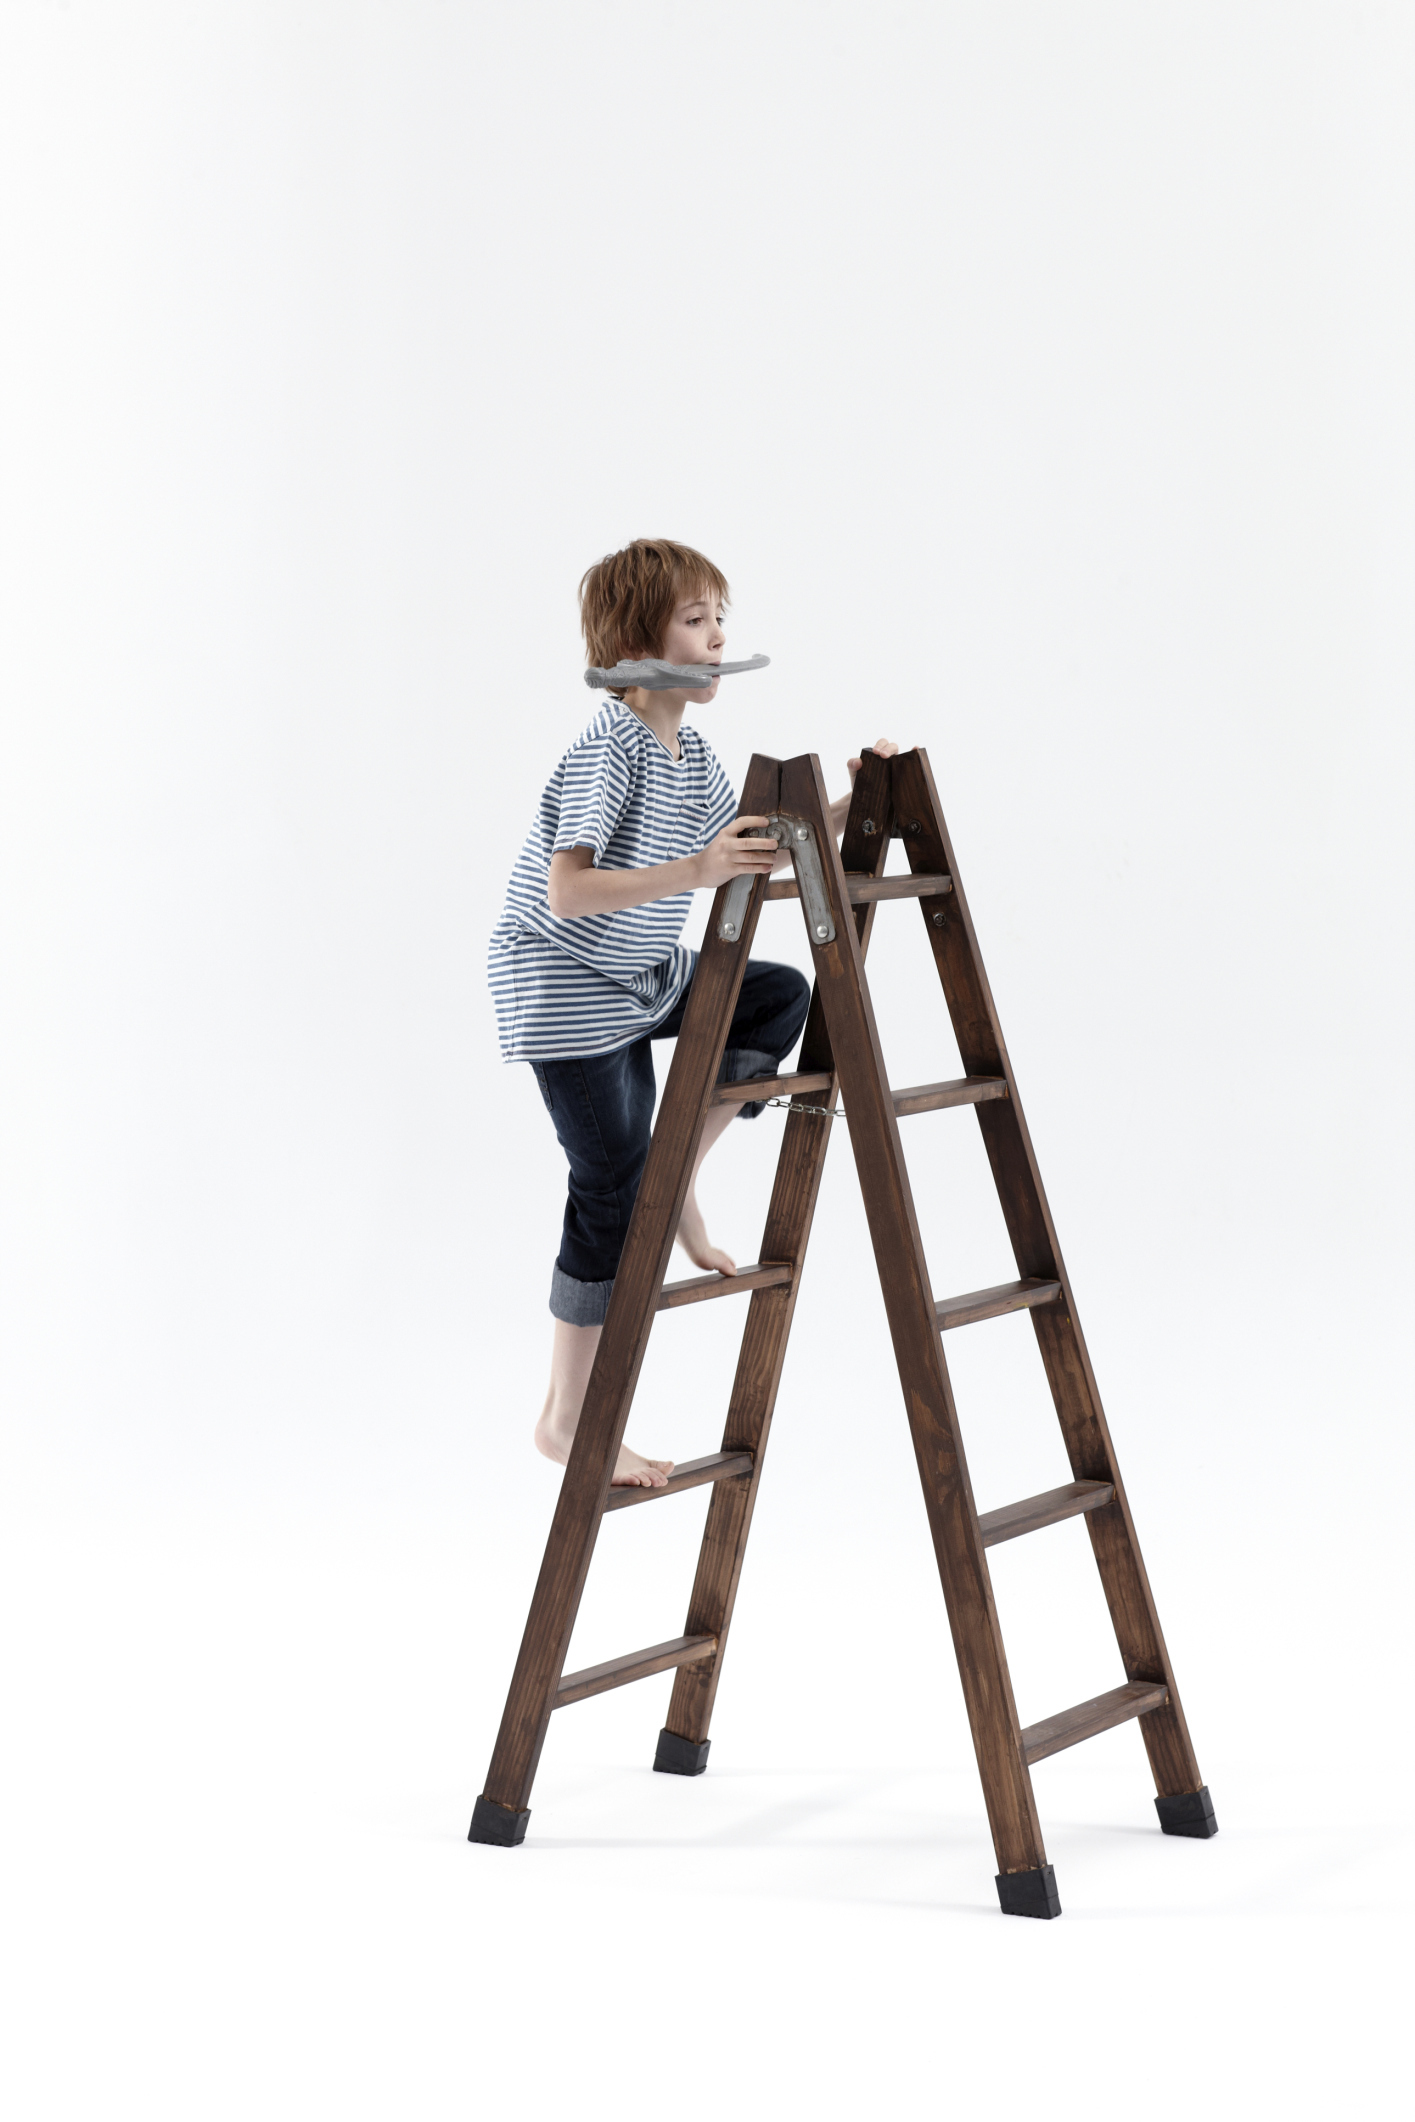 climbing the ladder analysis running head: ladder of inferance 1 susan valliere ladder of inference, a case study southern new hampshire university ladder of inferance 2 abstract the case study given is a classic case where a patient's belief, (real, false interpretation of facts) influences their behavior and is a barrier to receiving quality and/or appropriate care.